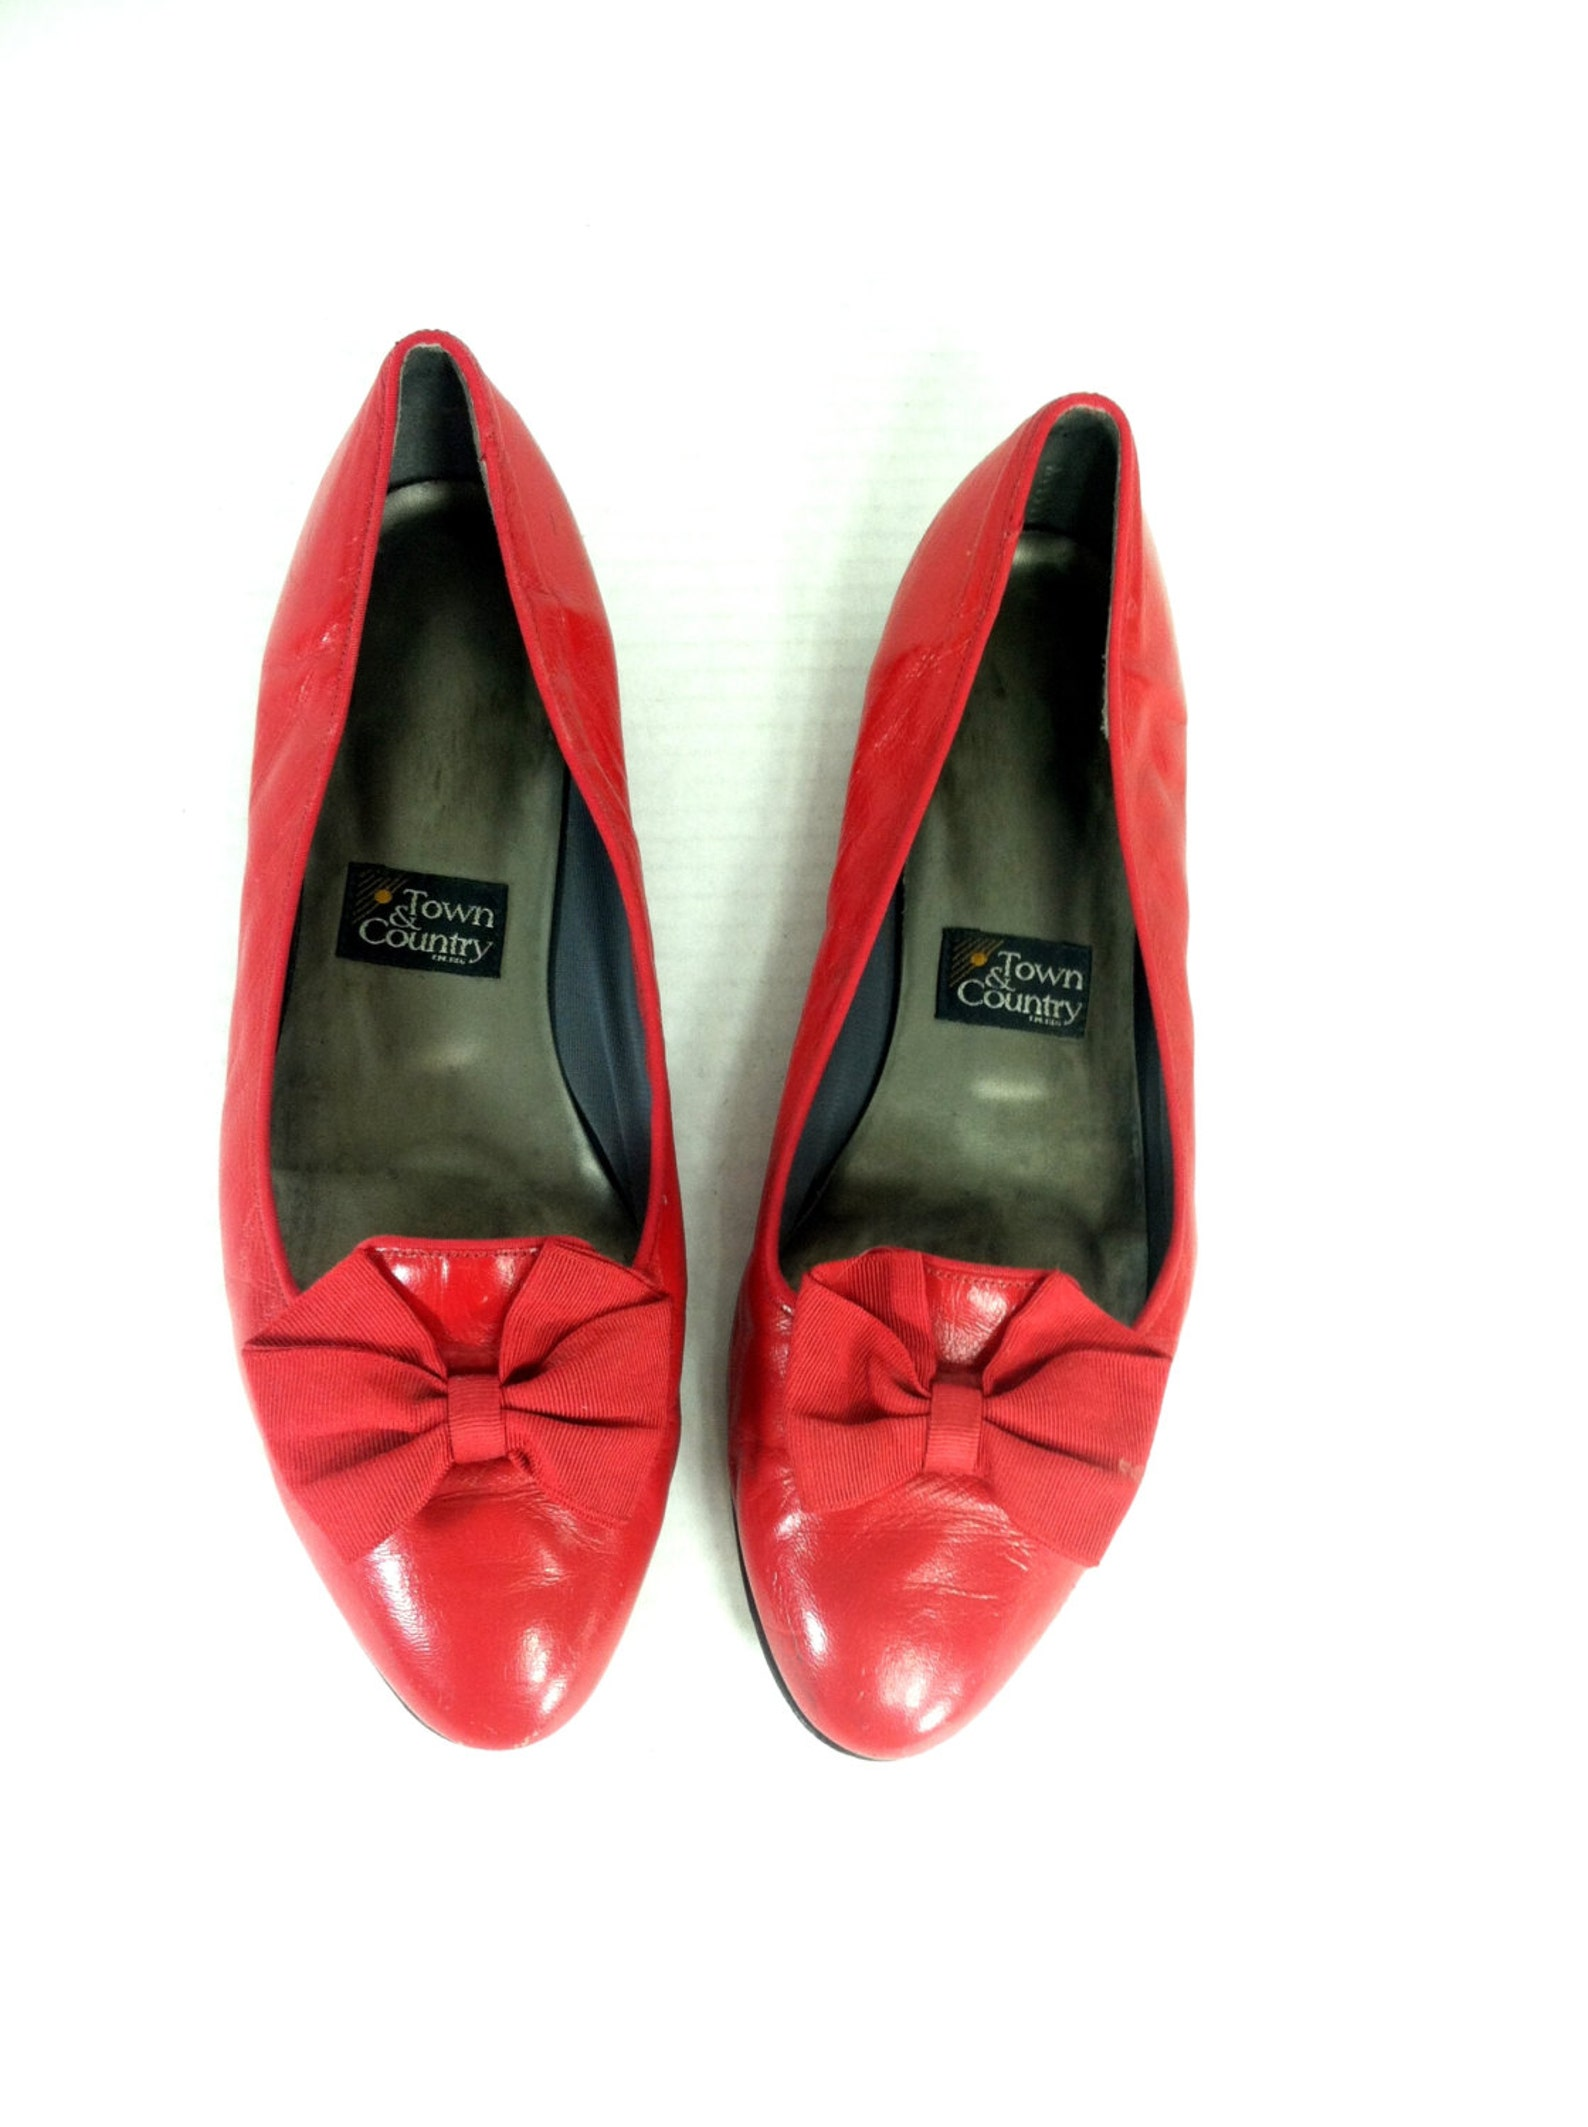 90's red leather vintage ballet flats with bow